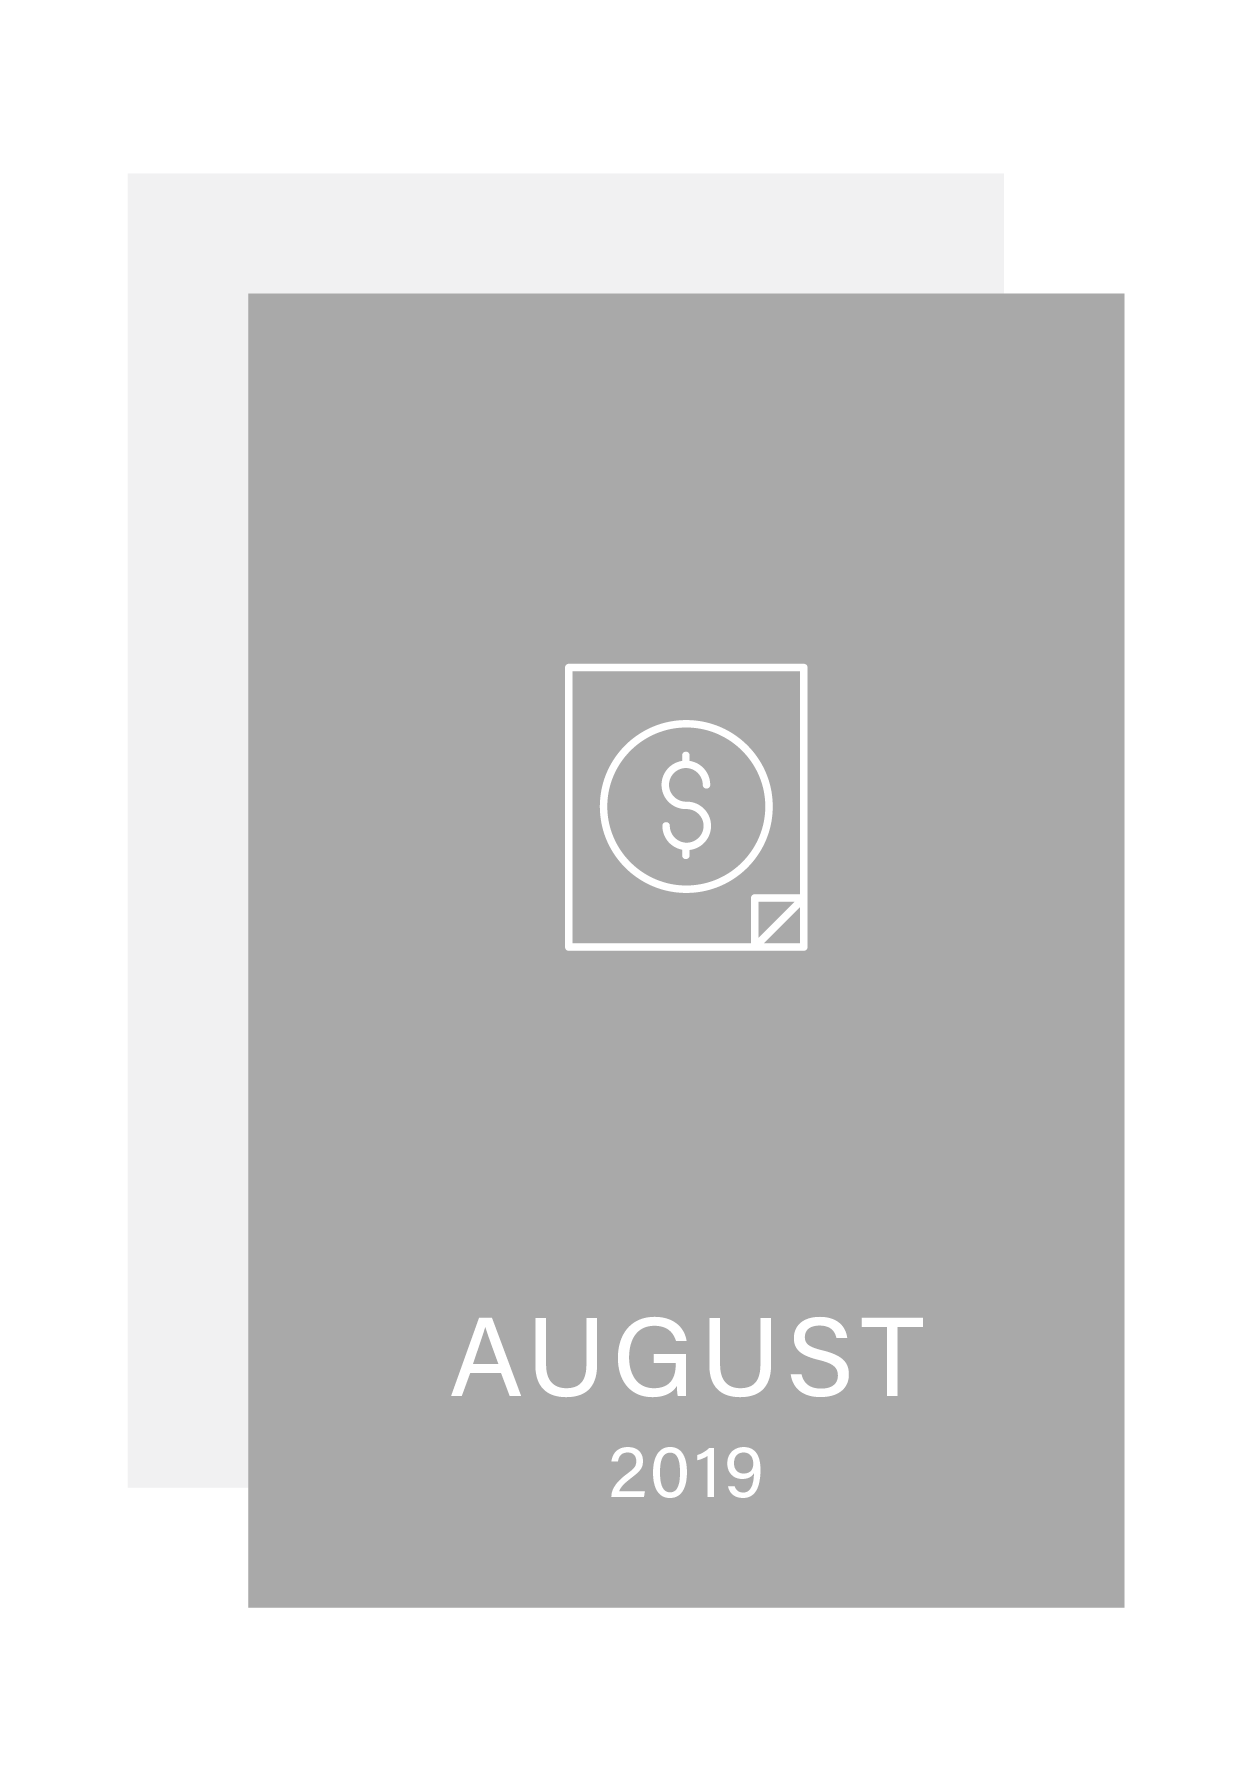 Finestone_Partners_Fiduciary_Insights_Newsletter_Image_August_2019.png